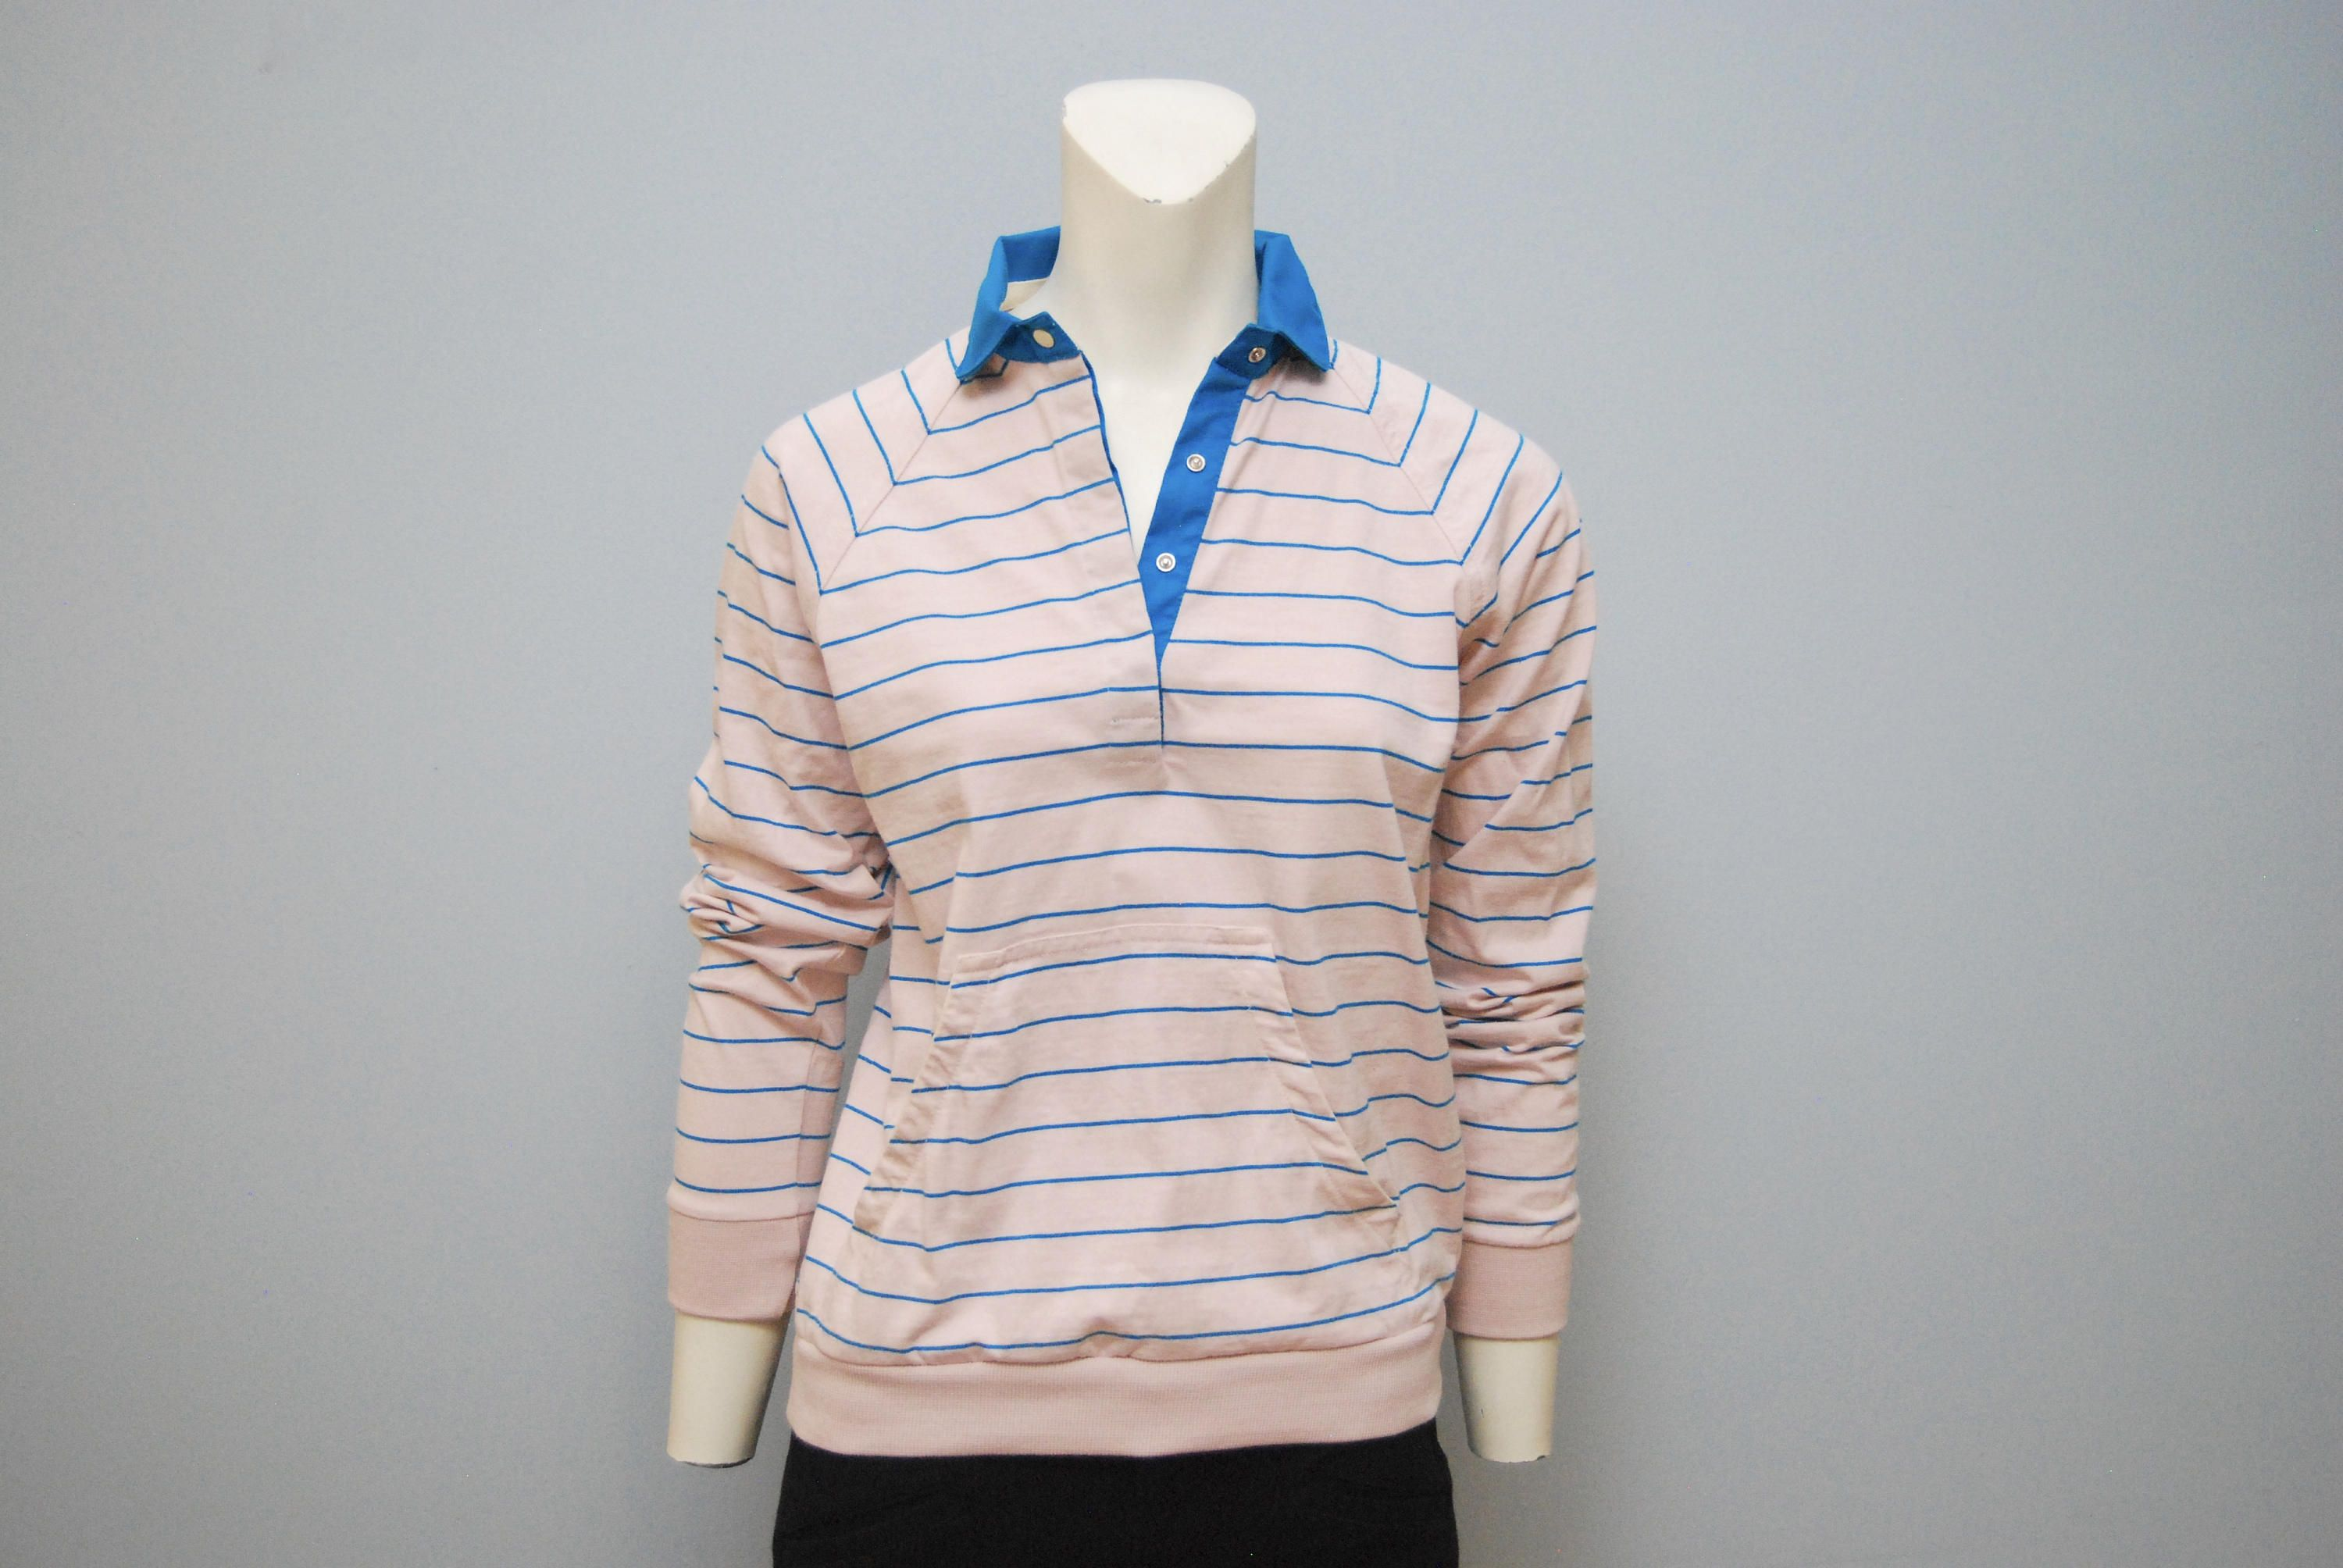 Vintage 1980 S Light Pink And Blue Striped Long Sleeve Polo Rugby Shirt With Front Pocket Women Size Medium By Merona Sport